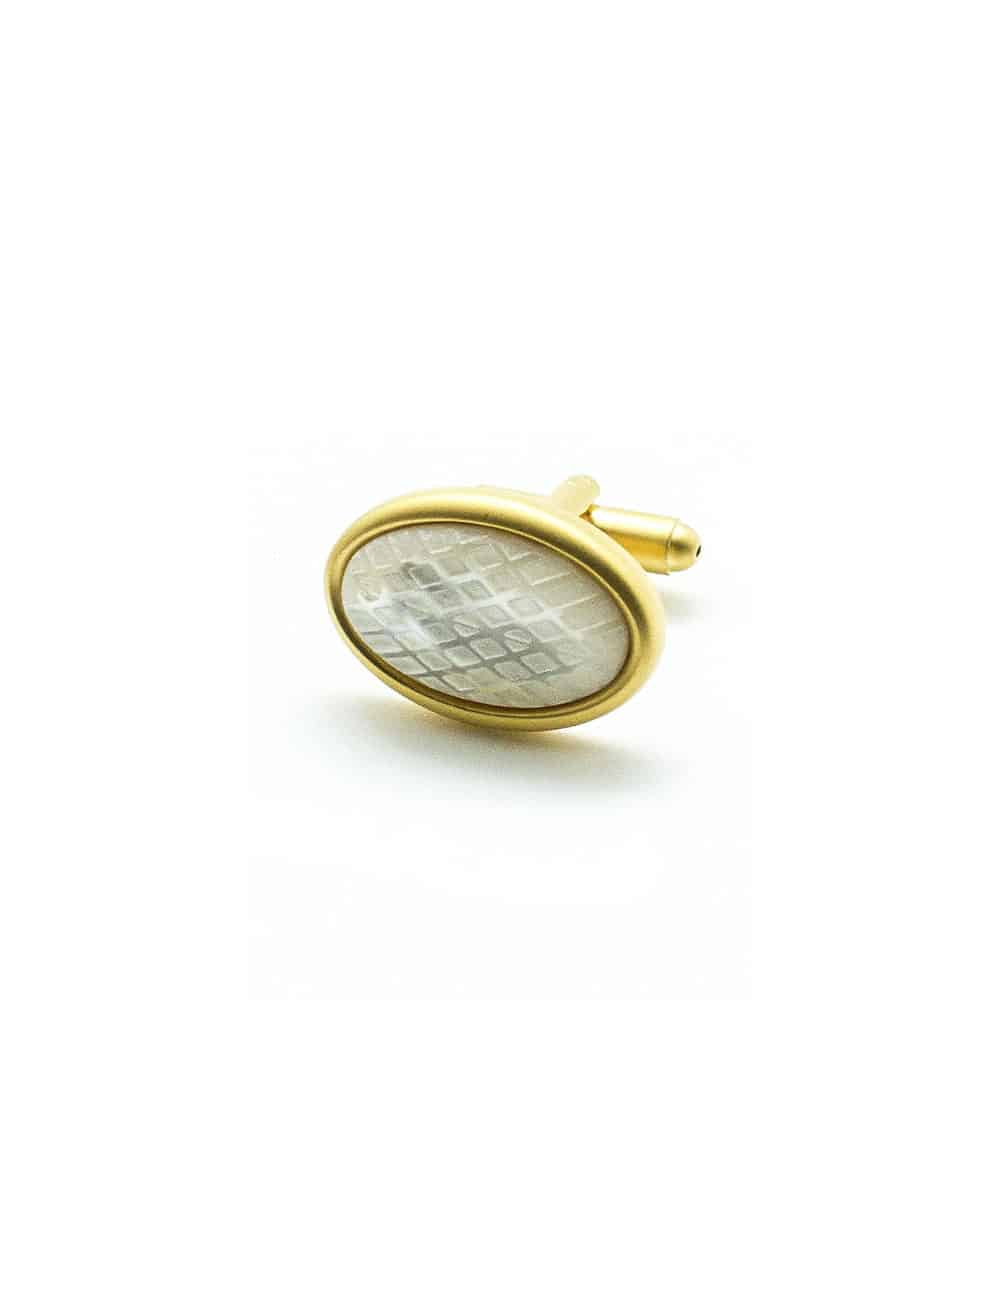 Mother of Pearl Oval Dome with Checks Matte Gold edge Cufflink C131FP-066B